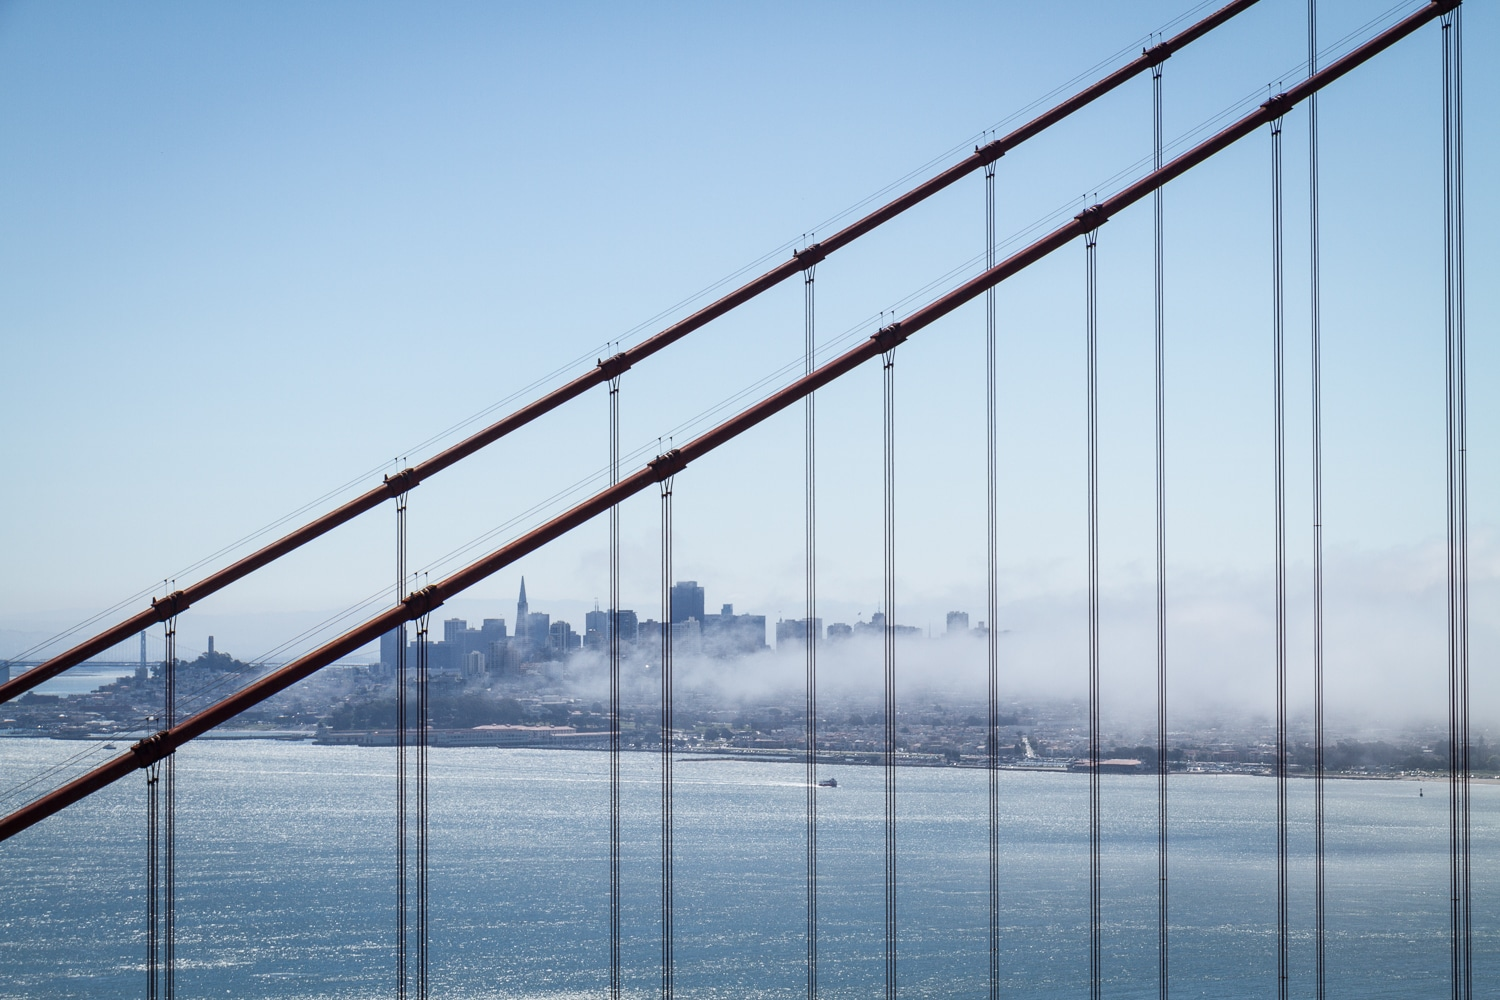 Through the Cables | Golden Gate Bridge | California